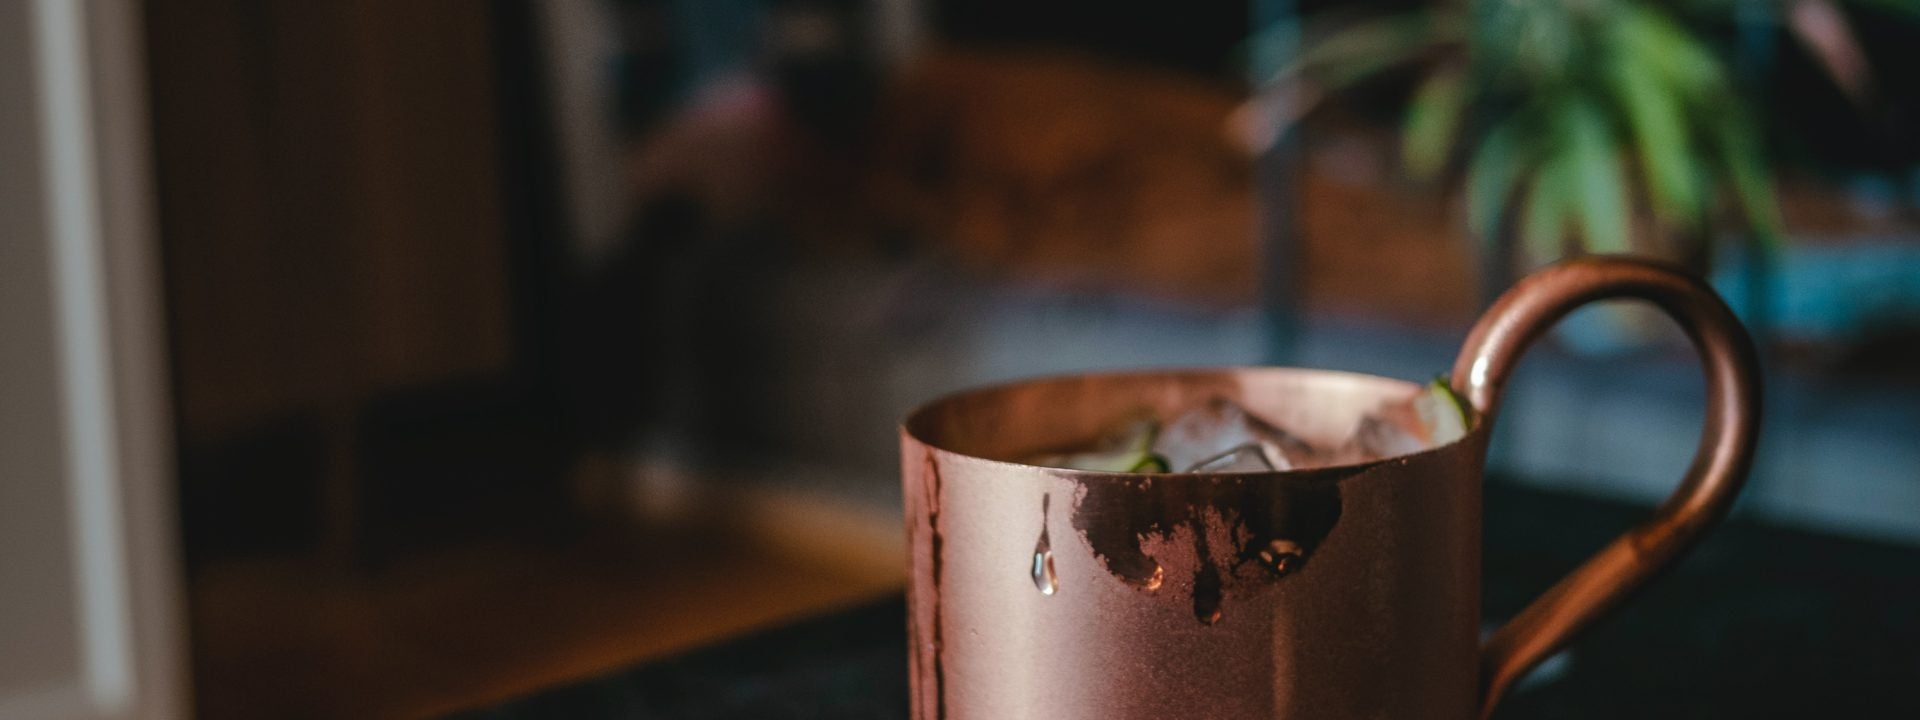 Stocked up on vodka? These 5 simple cocktail recipes are just what you need